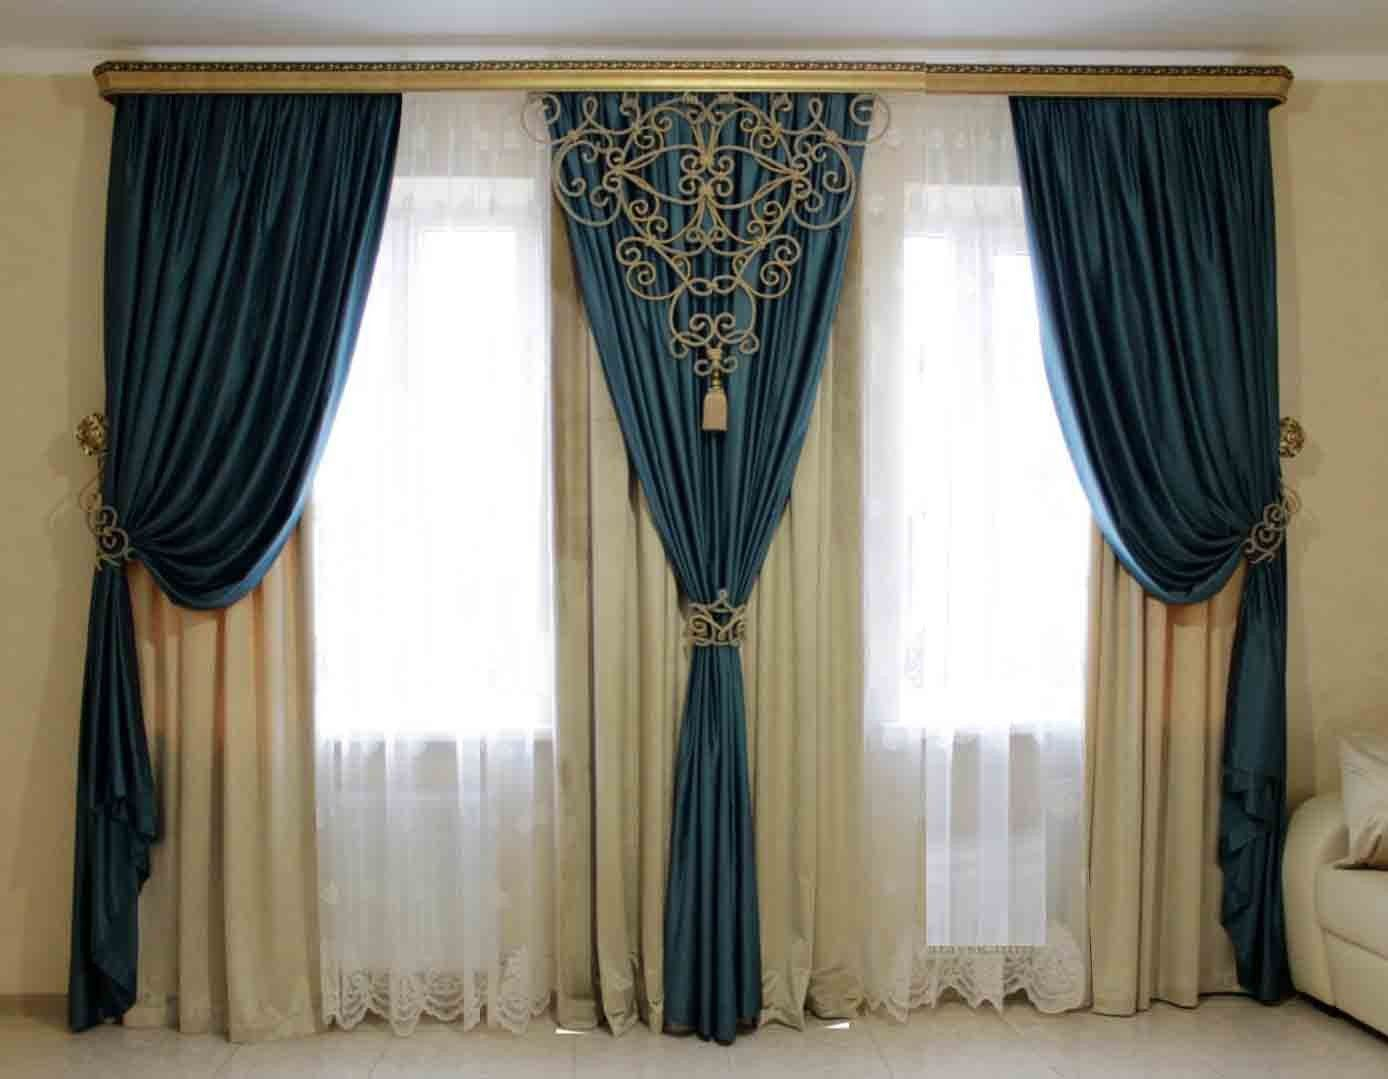 Modern Living Room Decorating Ideas Curtains Luxury 50 Stylish Modern Living Room Curtains Des Curtains Living Room Modern Curtain Designs Curtains Living Room